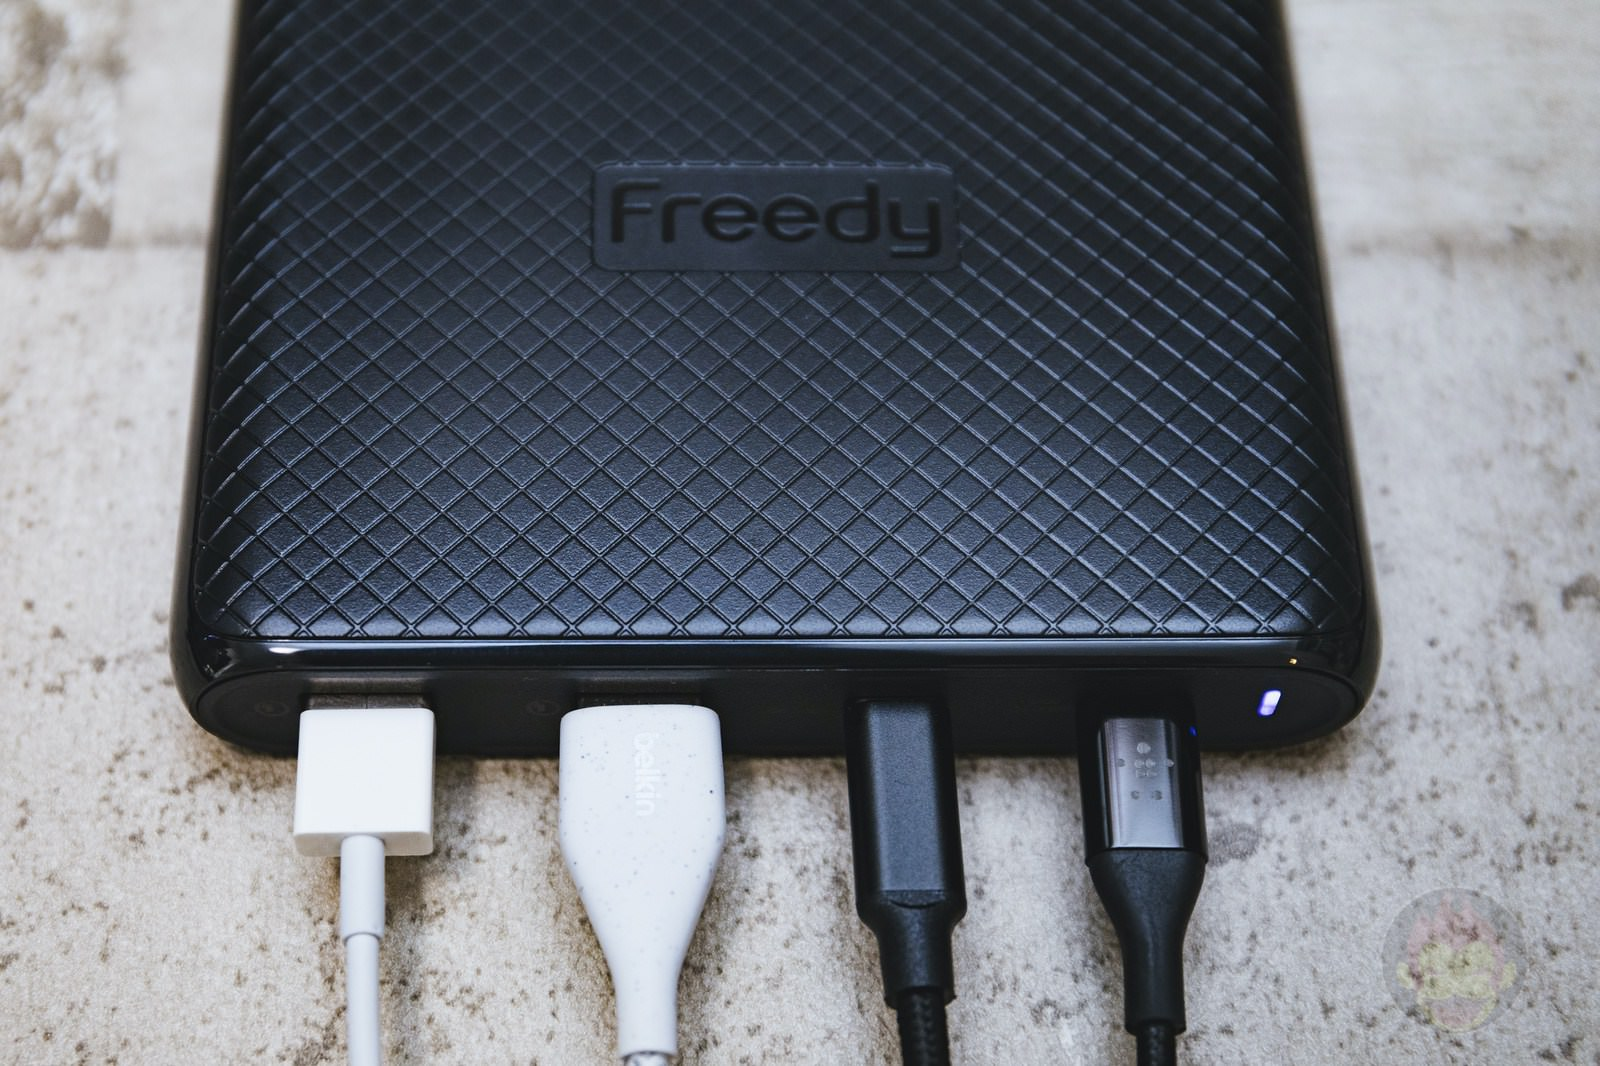 Freedy-90W-Multiport-Charger-Review-09.jpg